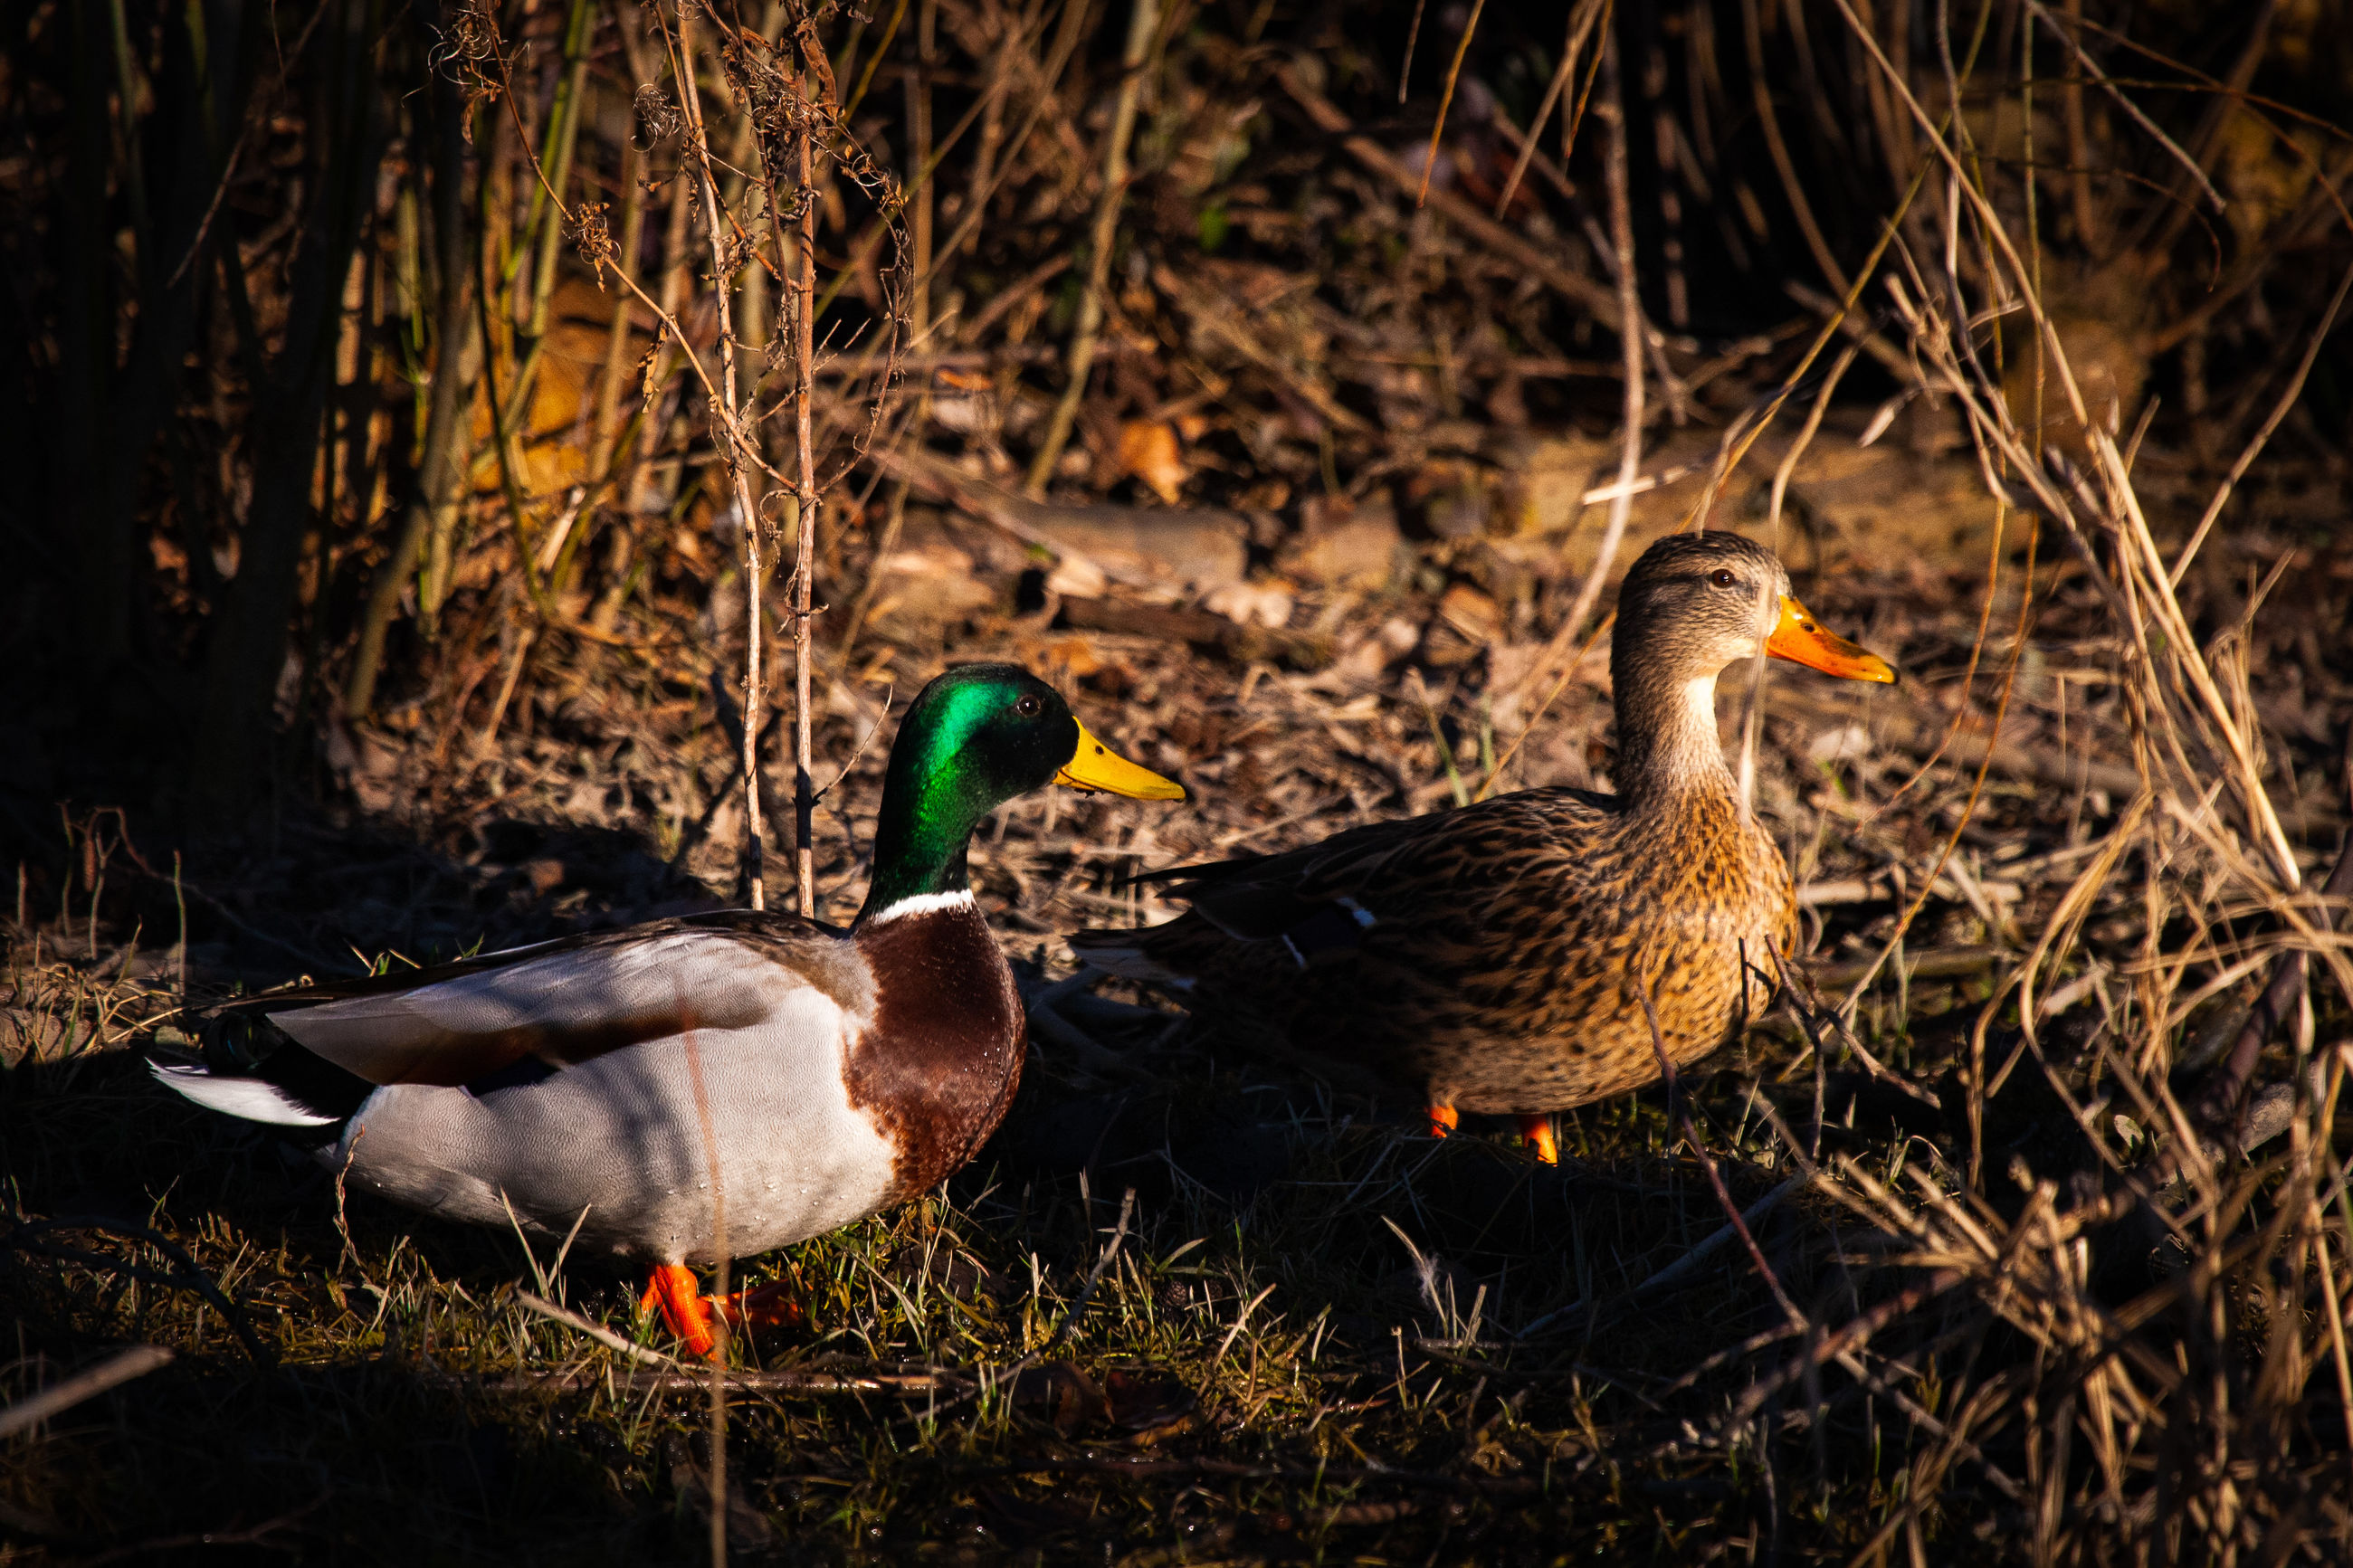 bird, animal themes, animal, animals in the wild, vertebrate, animal wildlife, group of animals, duck, poultry, land, nature, field, water bird, no people, female animal, two animals, plant, day, outdoors, young animal, animal family, gosling